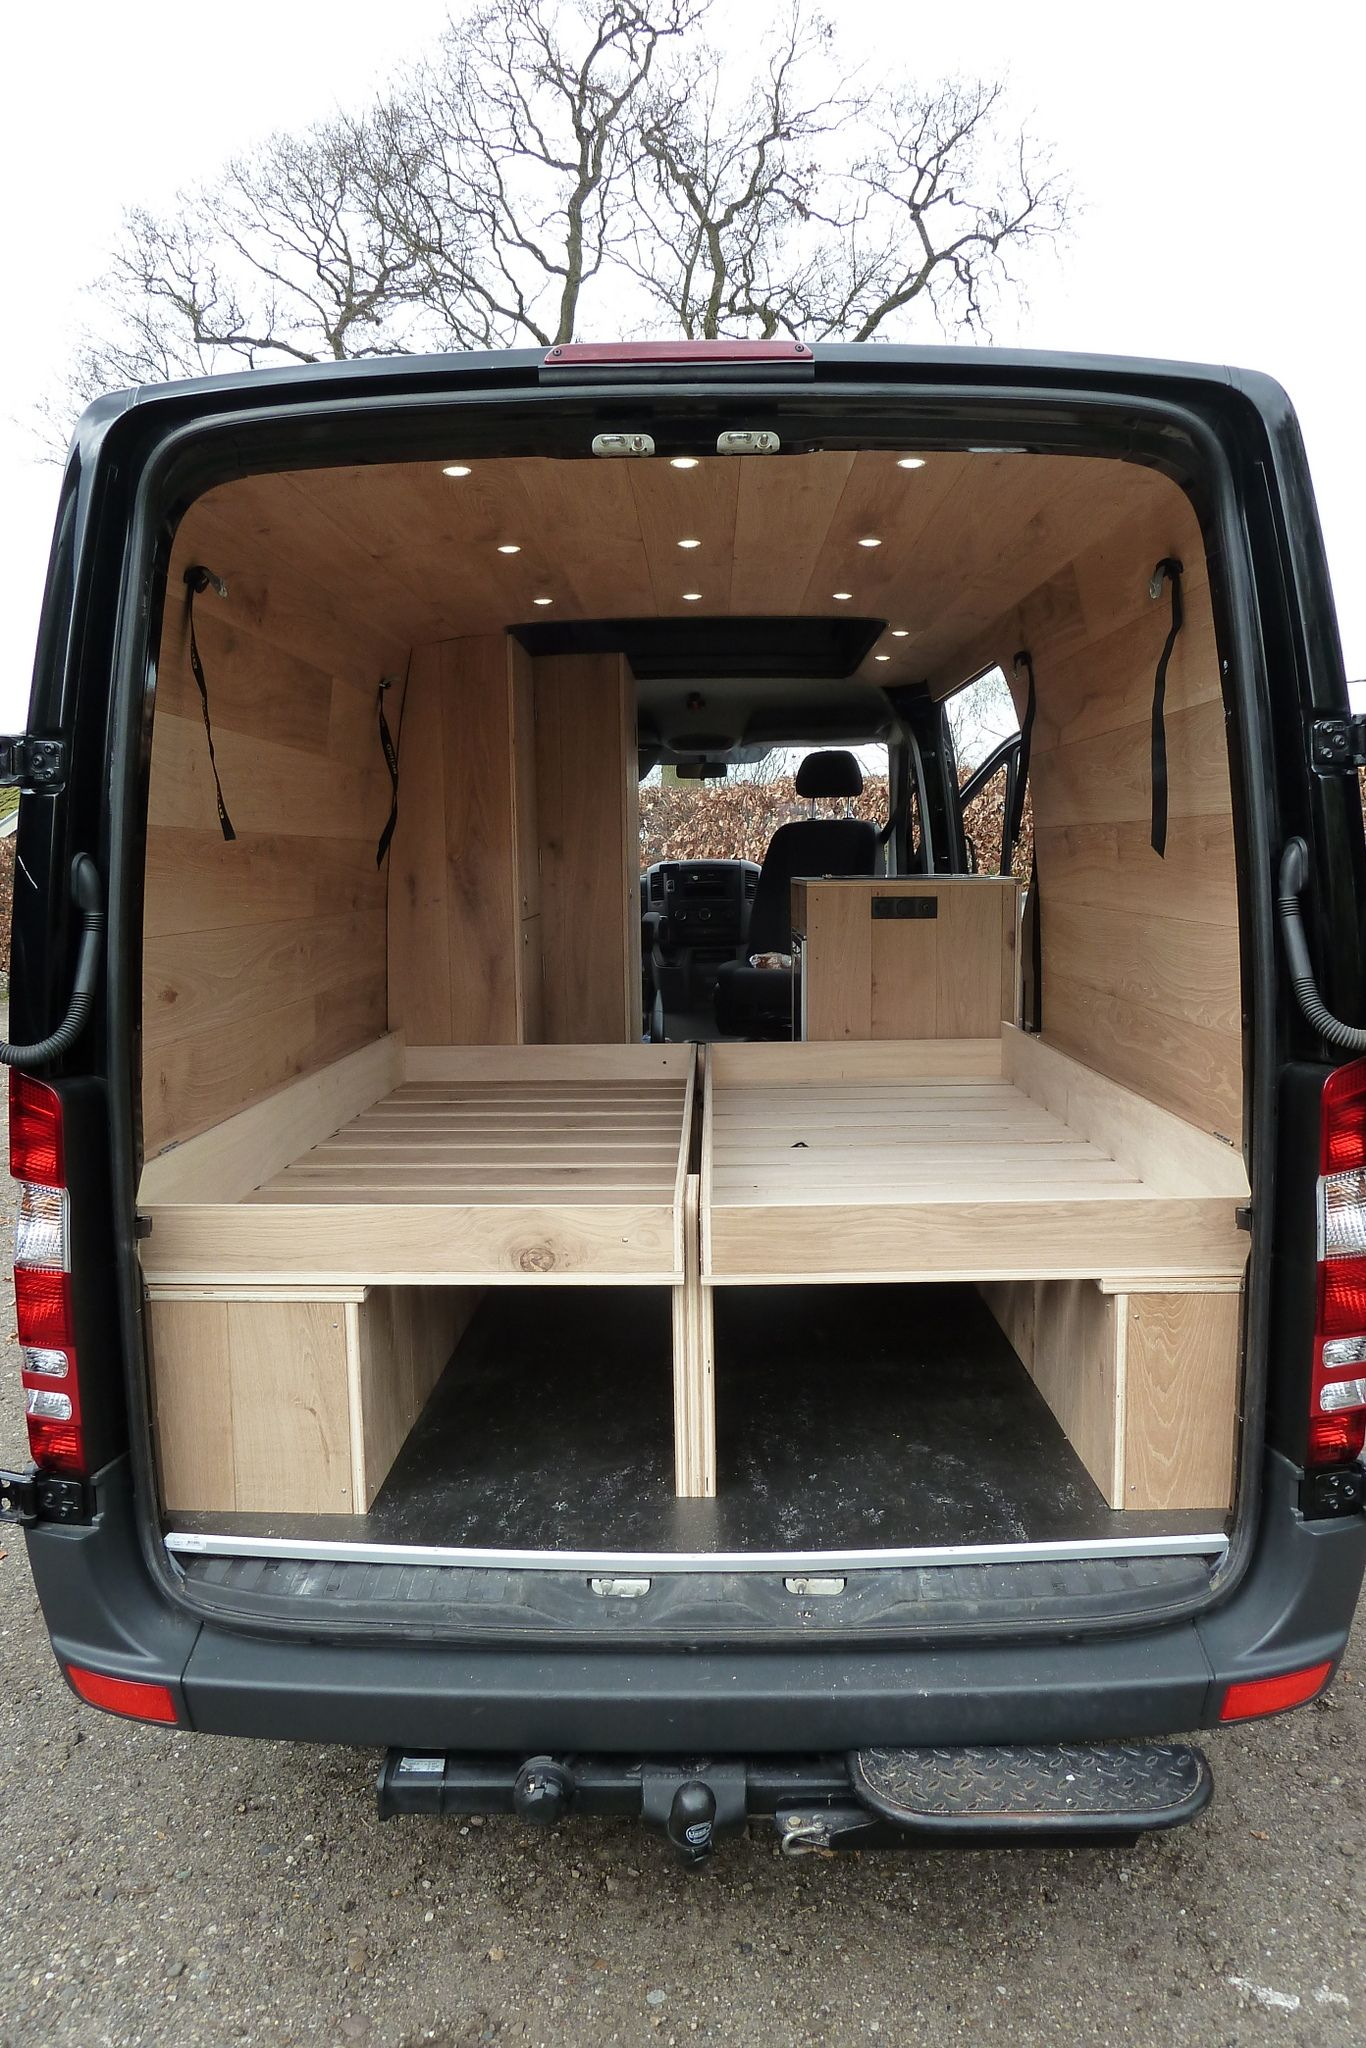 Mercedes Sprinter Camper Met Eiken Interieur Groot Bed 1